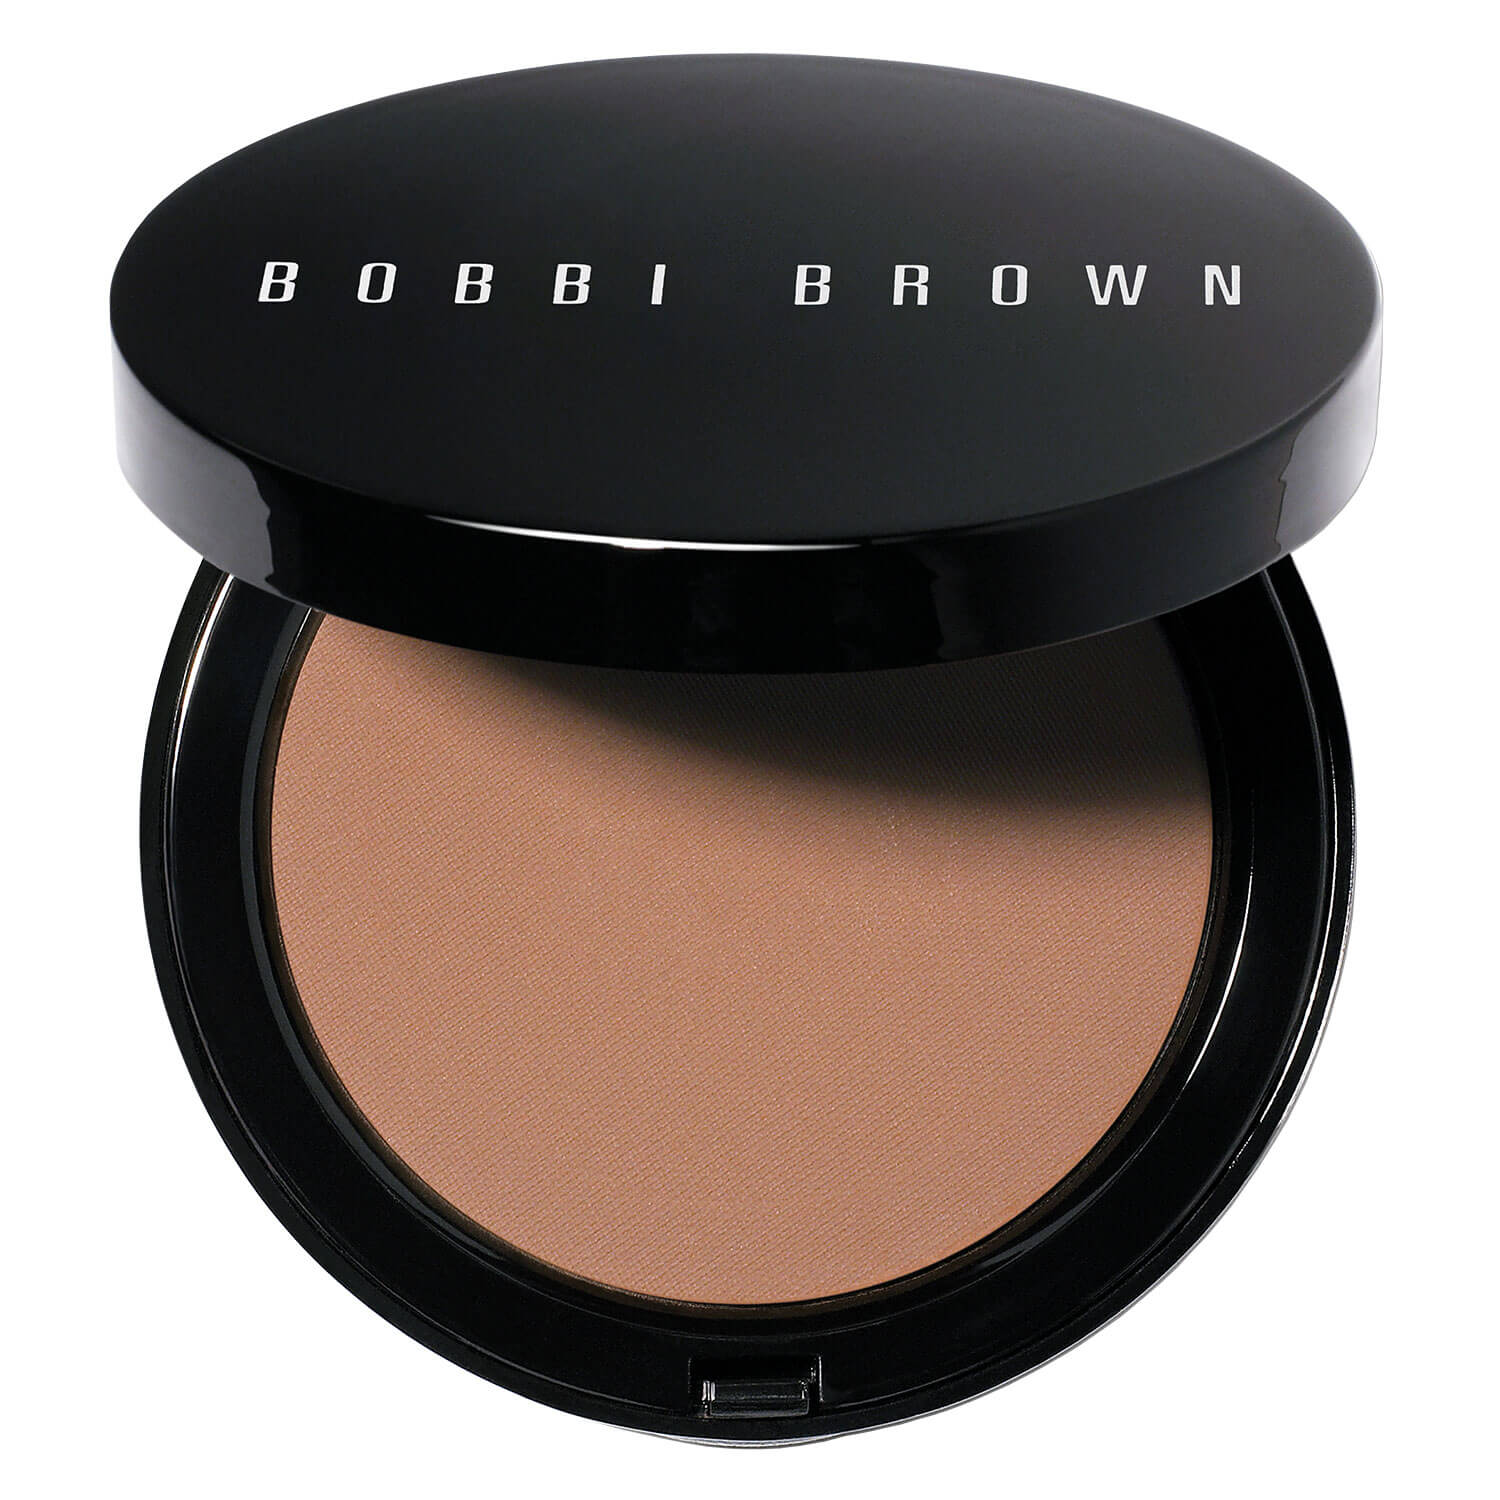 BB Bronzer - Bronzing Powder Medium